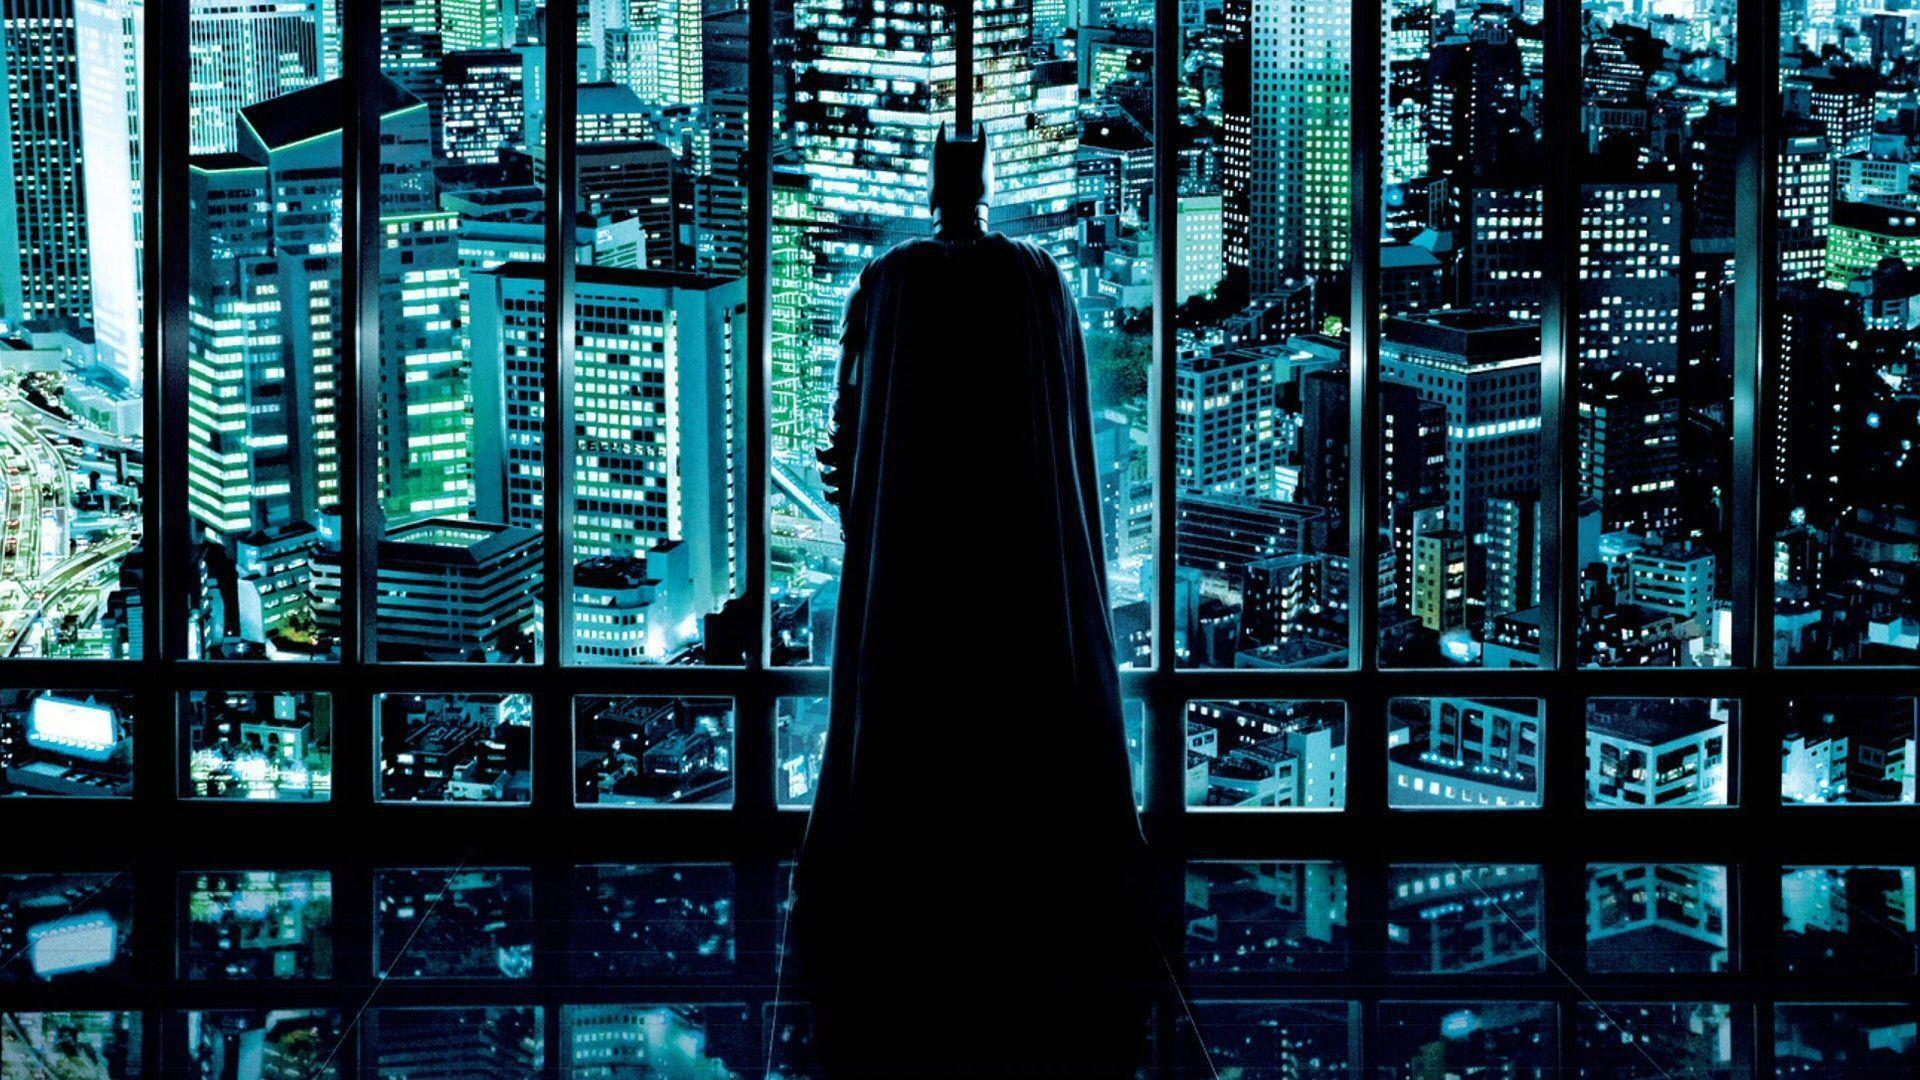 Dark Knight Wallpaper, Batman Movie Wallpaper | Wallpapers